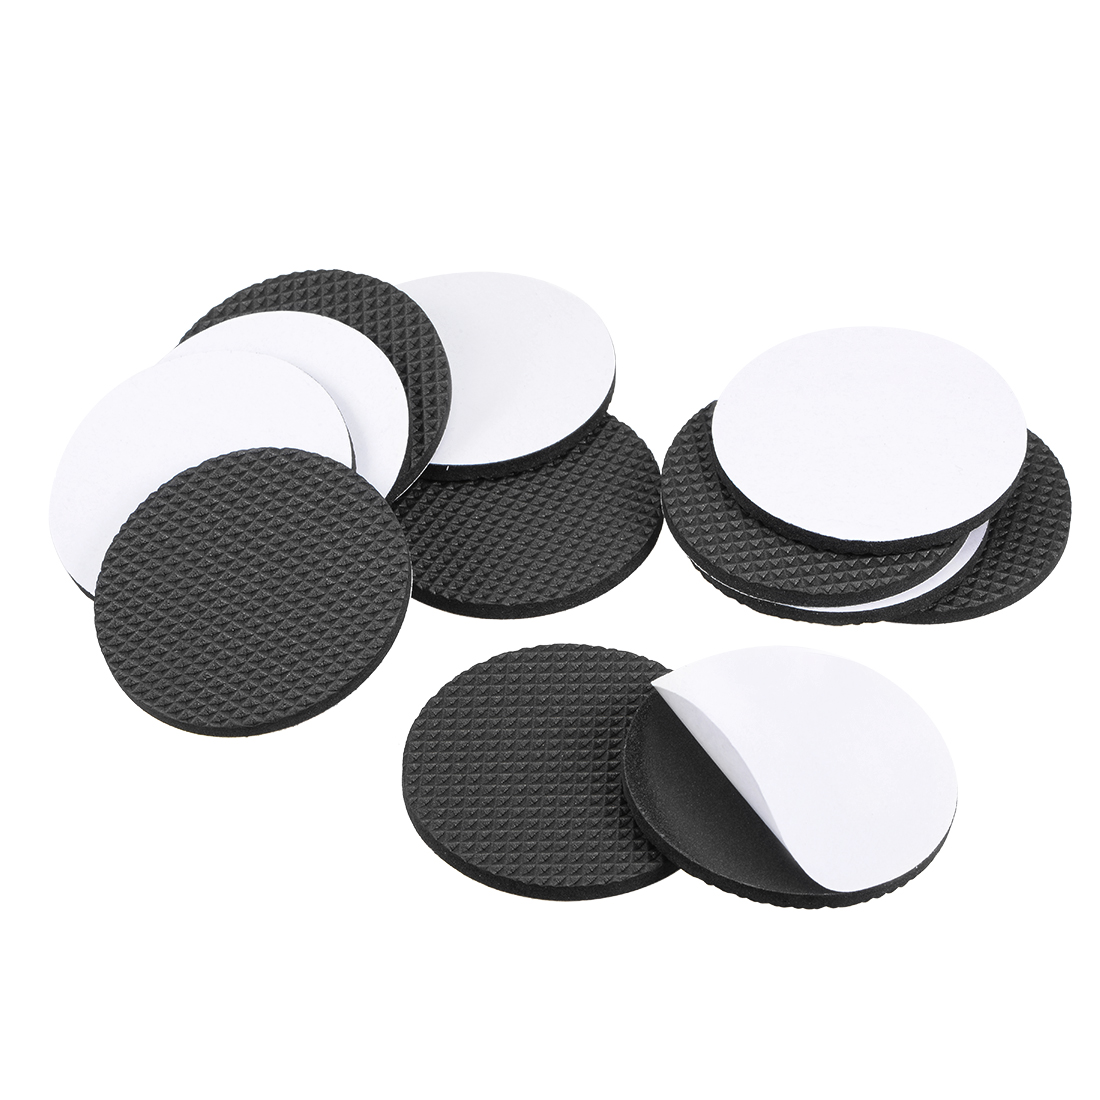 Furniture Pads Adhesive Rubber Pads 60mm Dia 4mm Thick Round Black 28Pcs